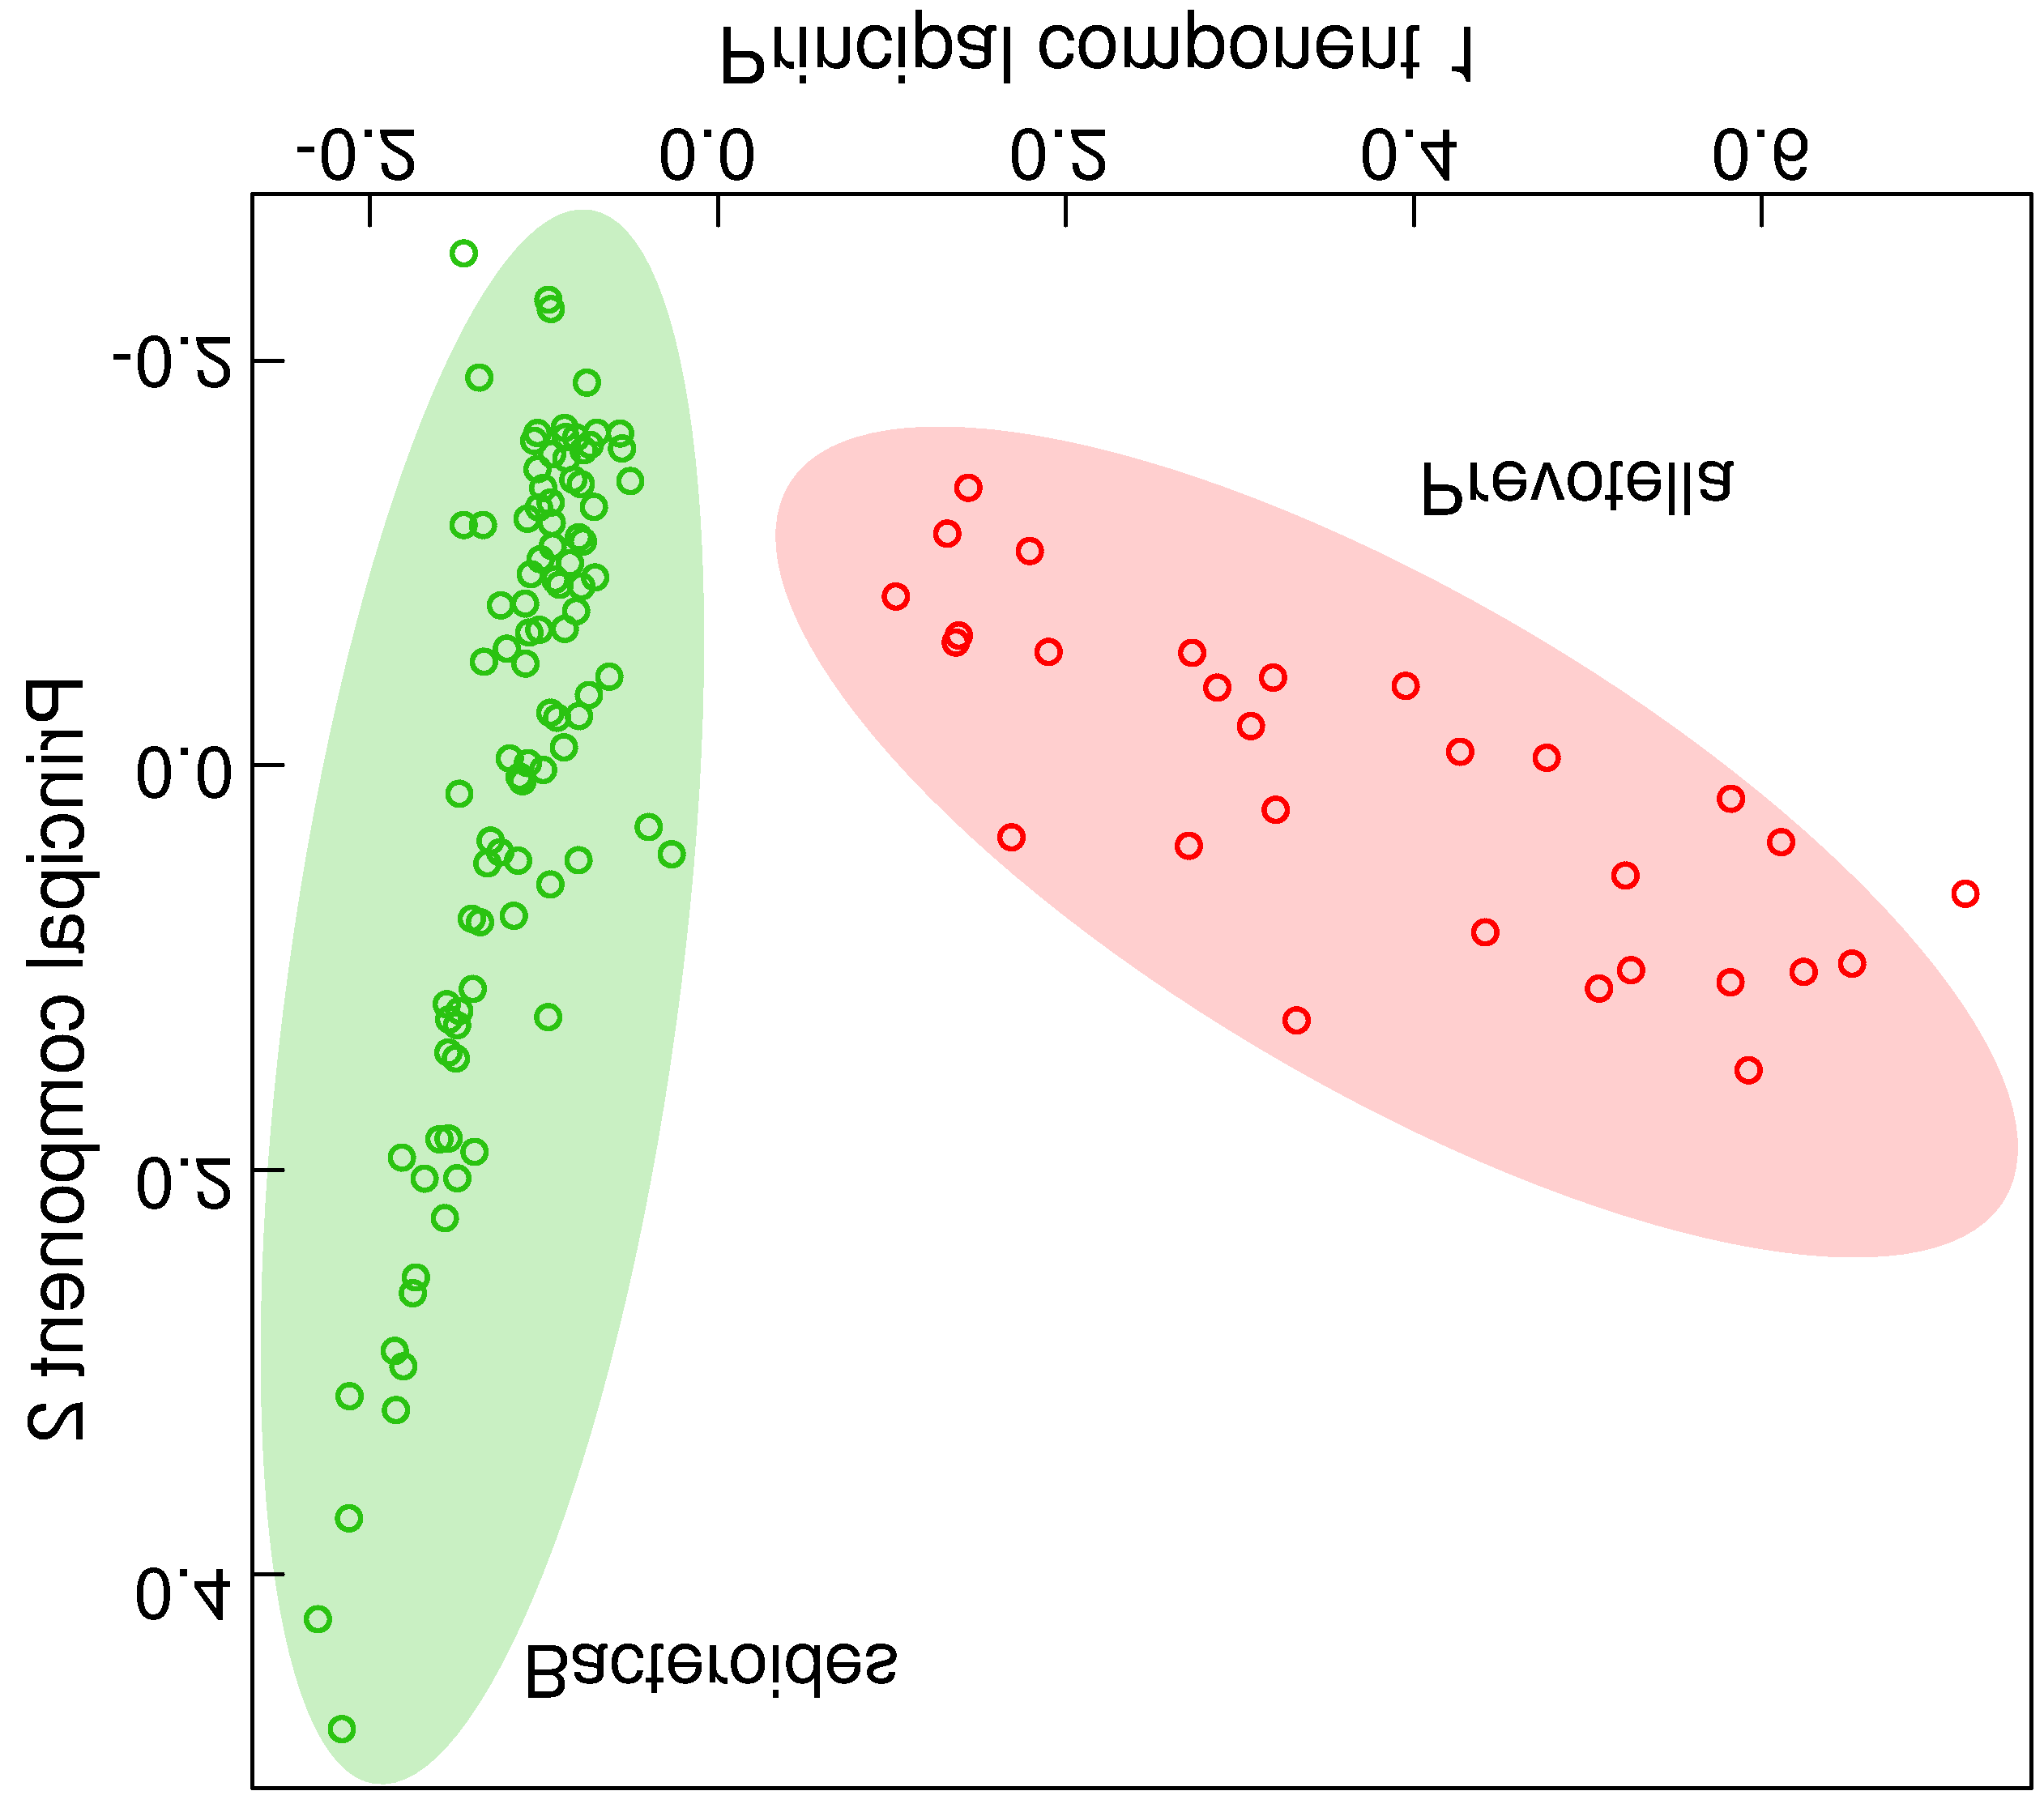 Figure 7.4: Principal component analysis shows 2 clusters. Here, a principal component analysis (see Materials and methods) with abundances at the genus level yielded 2 distinct clusters.